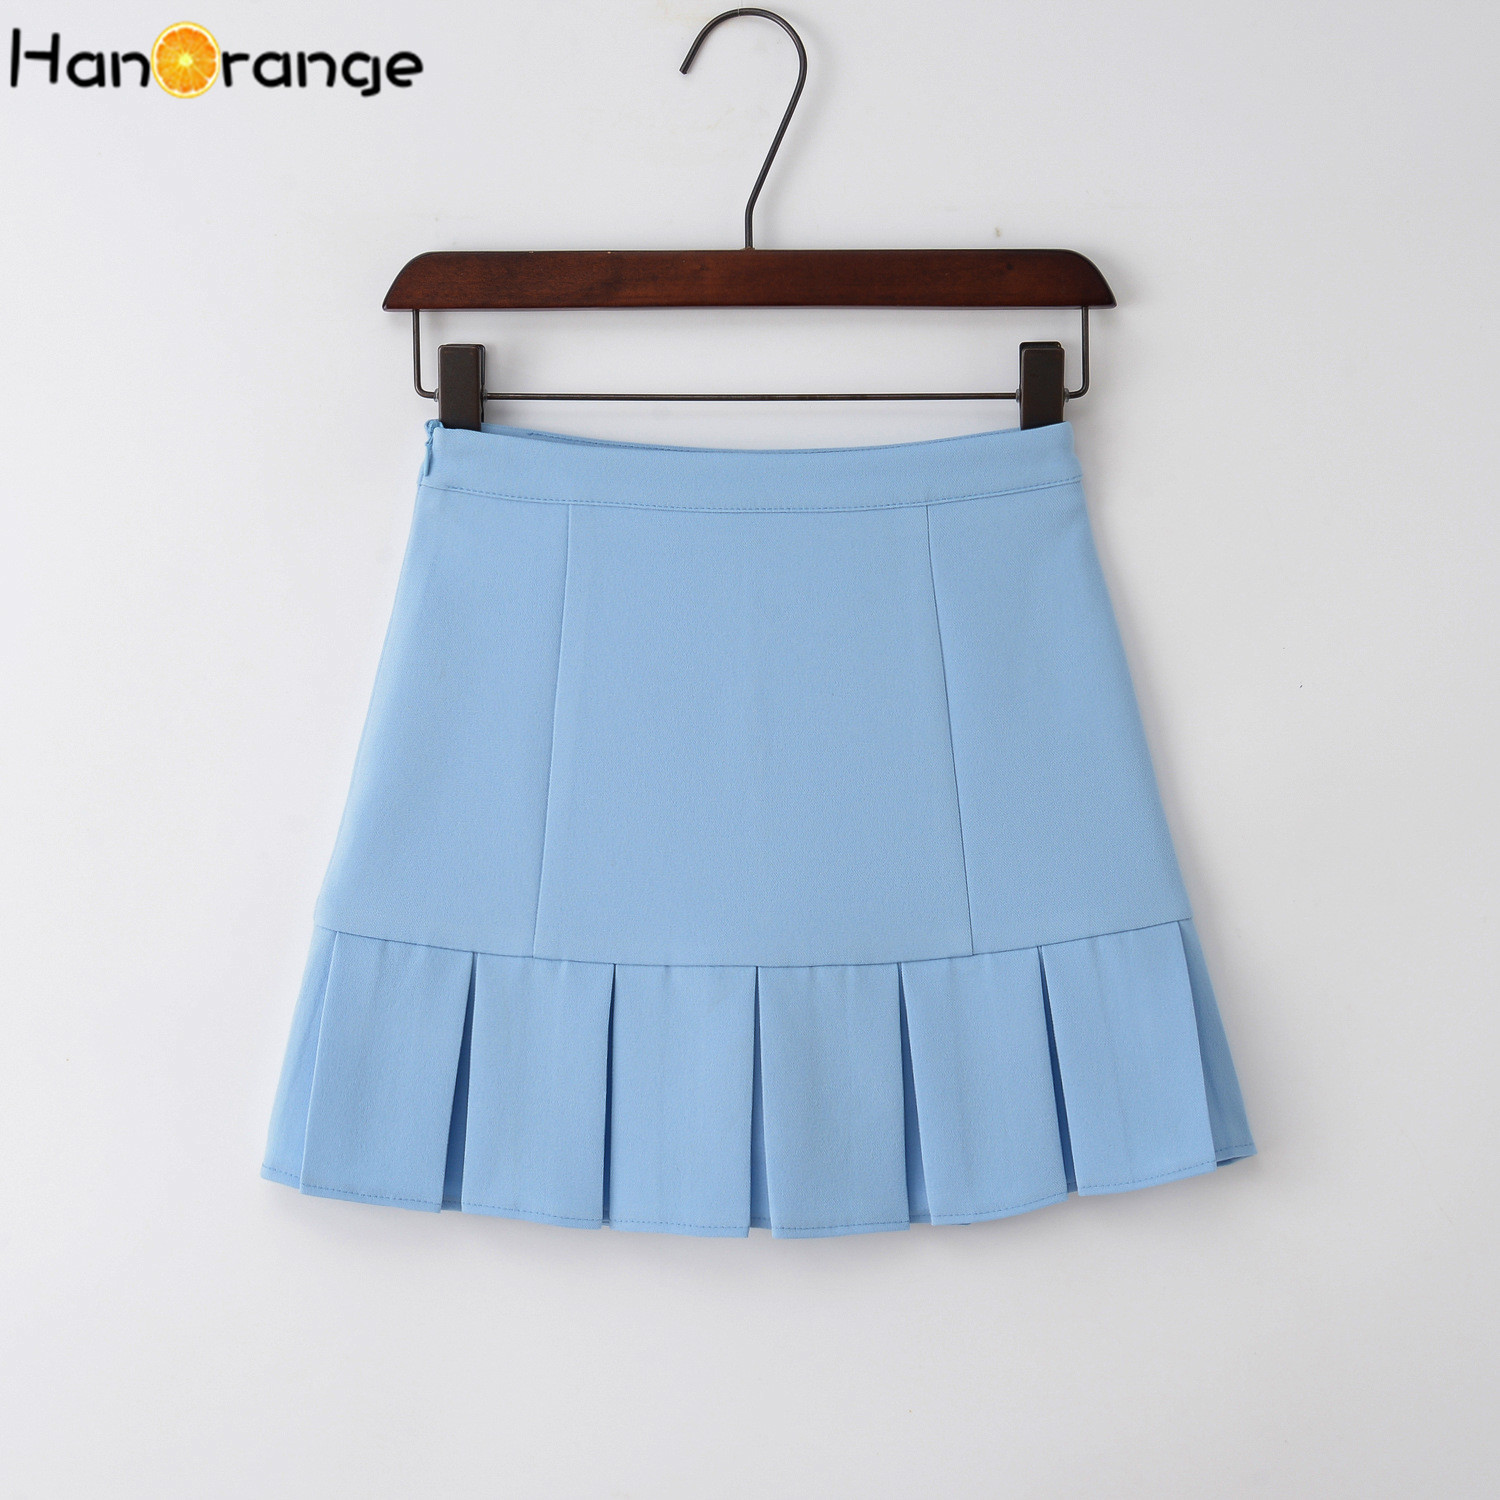 HanOrange 2020 High Waist Slim College Preppy Style Pleated Skirt With Safety Pant White/Black/Pink/Dark Blue/Sky Blue XS-XXL